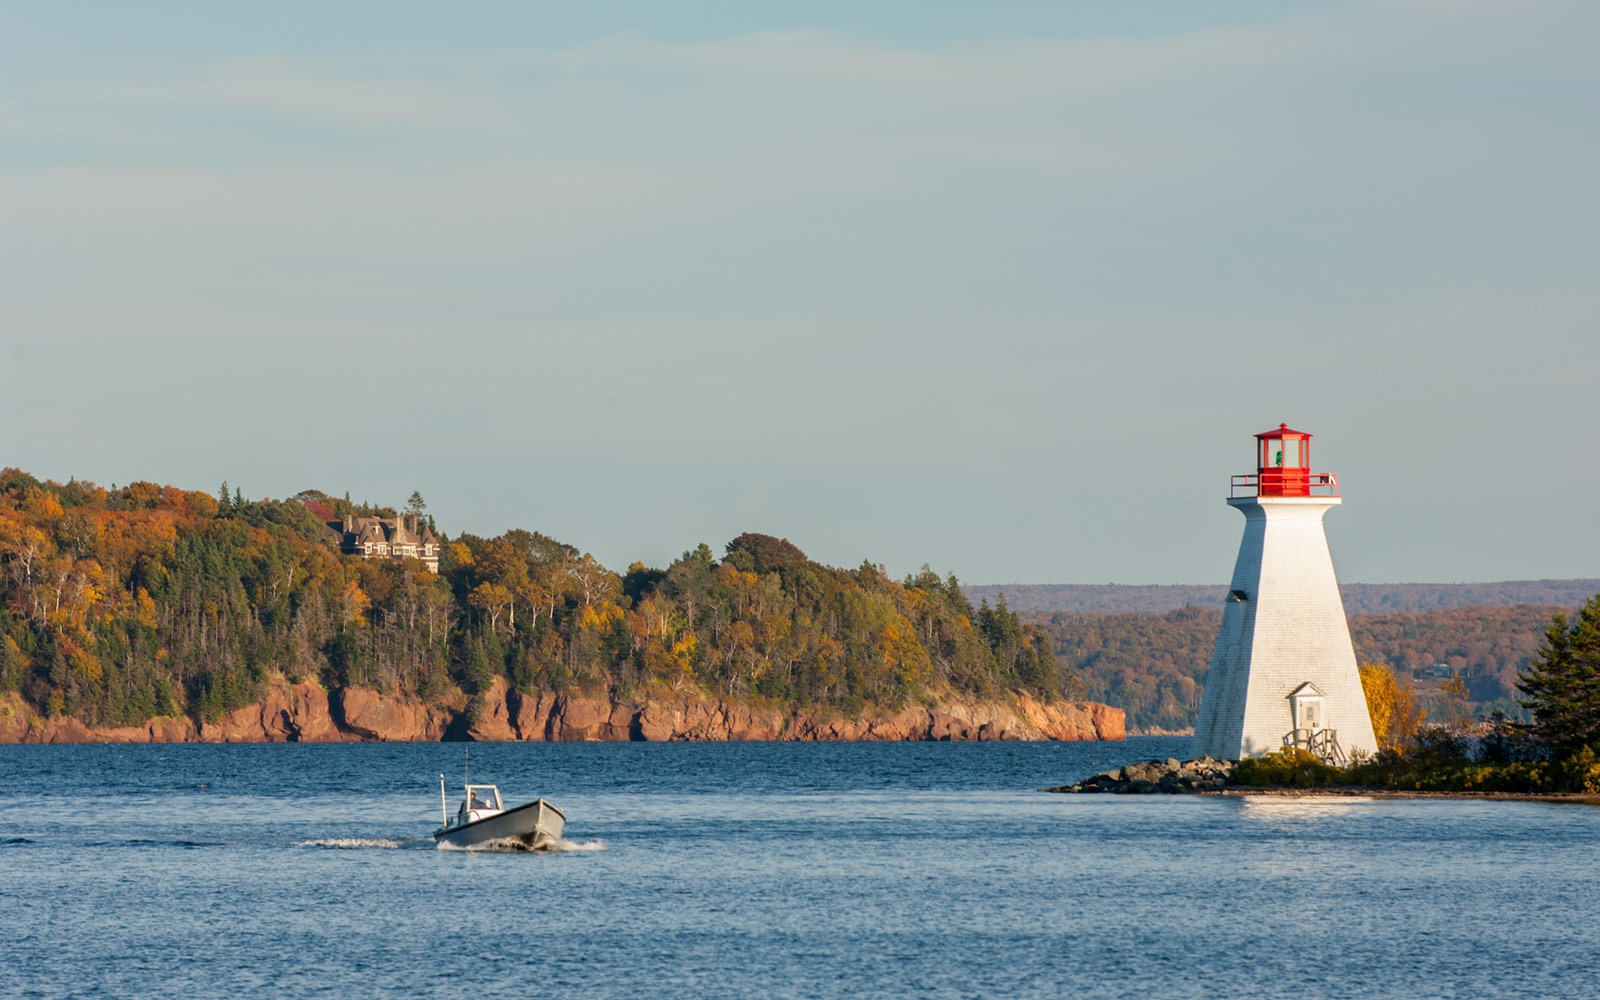 Baddeck Light House, Cape Breton Island, Nova Scotia, Canada